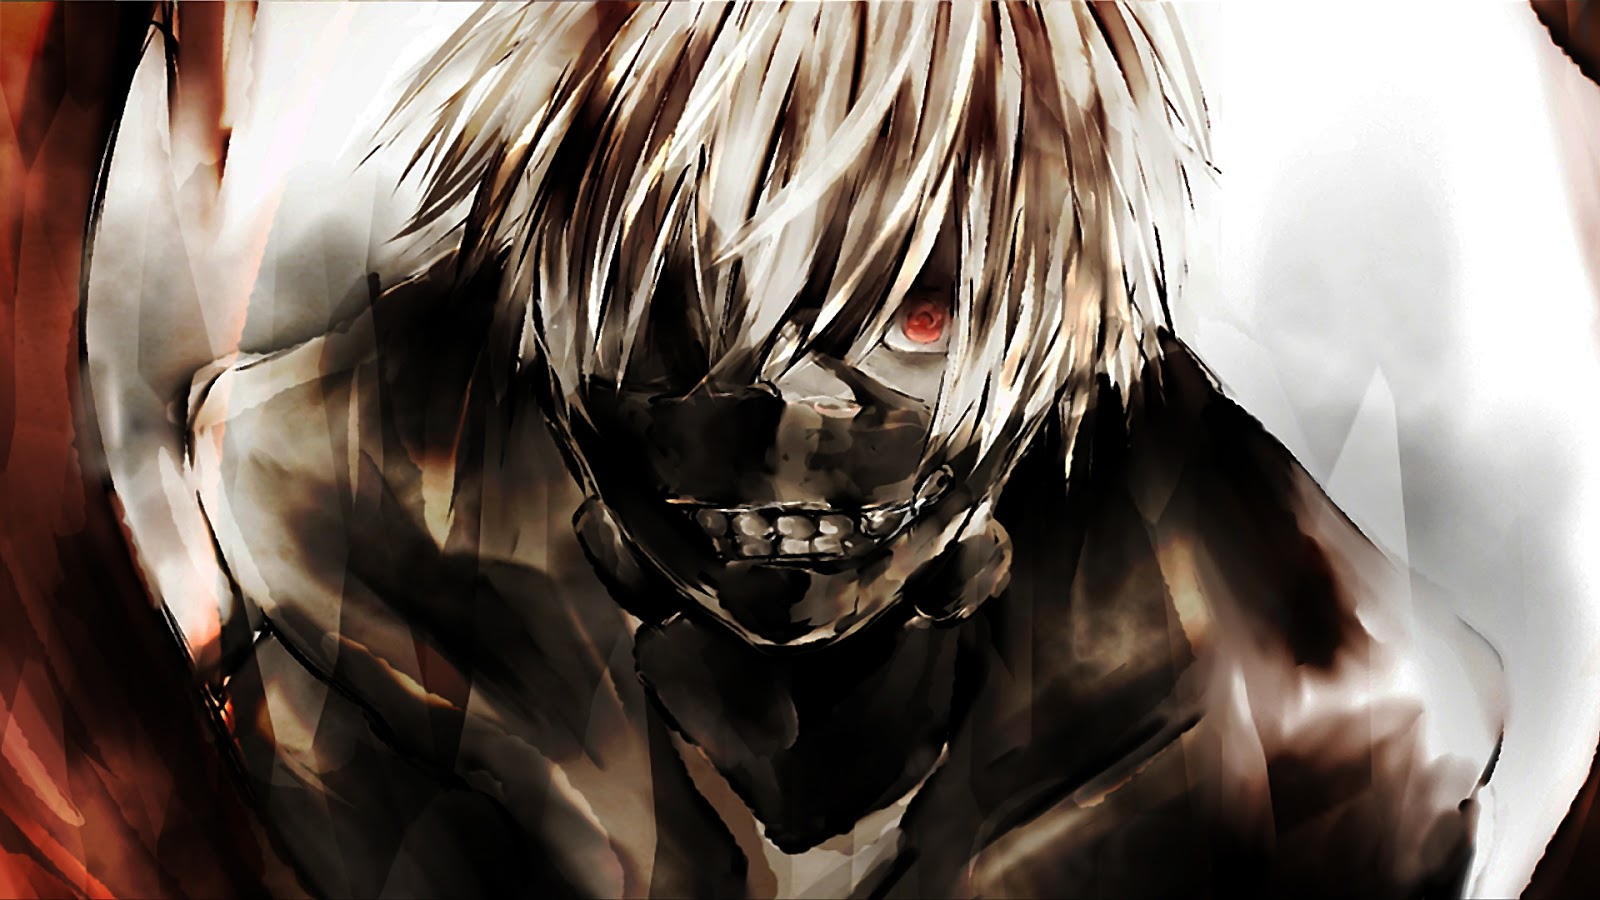 Tokyo Ghoul Live Wallpaper For Pc Labzada Wallpaper